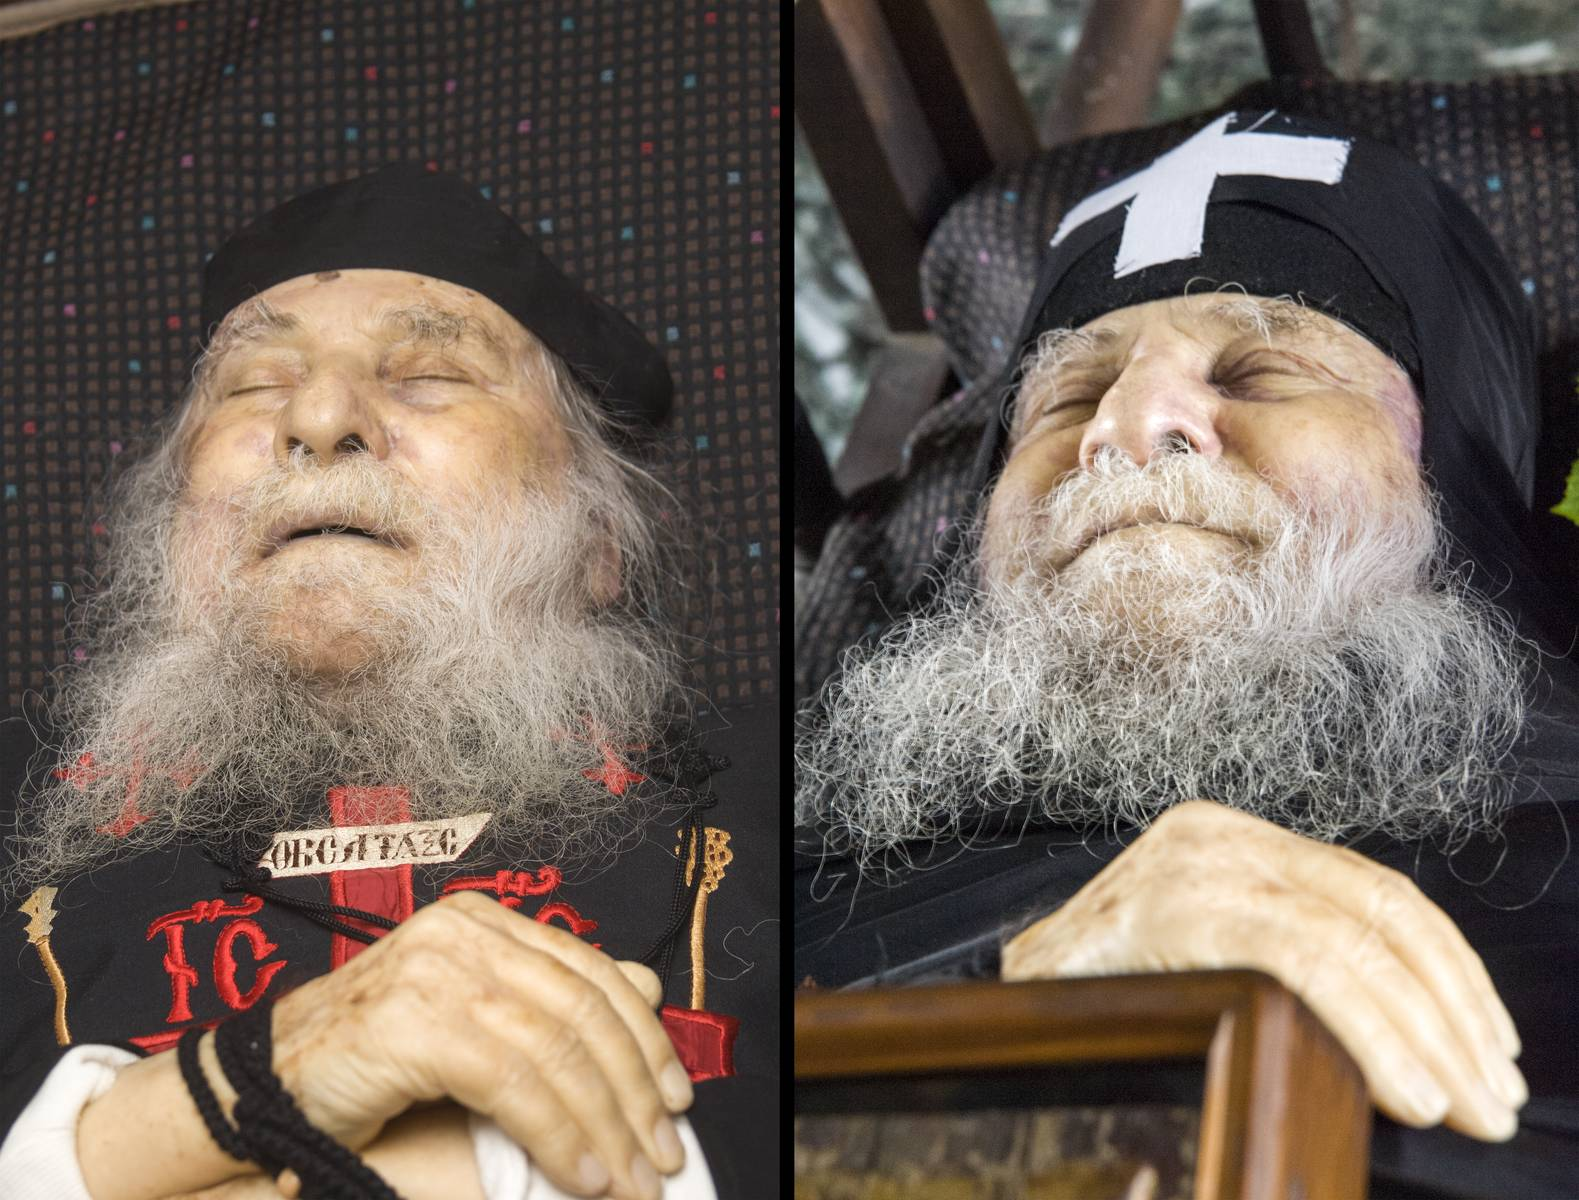 Elder Joseph of Vatopaidi - A smile from eternity